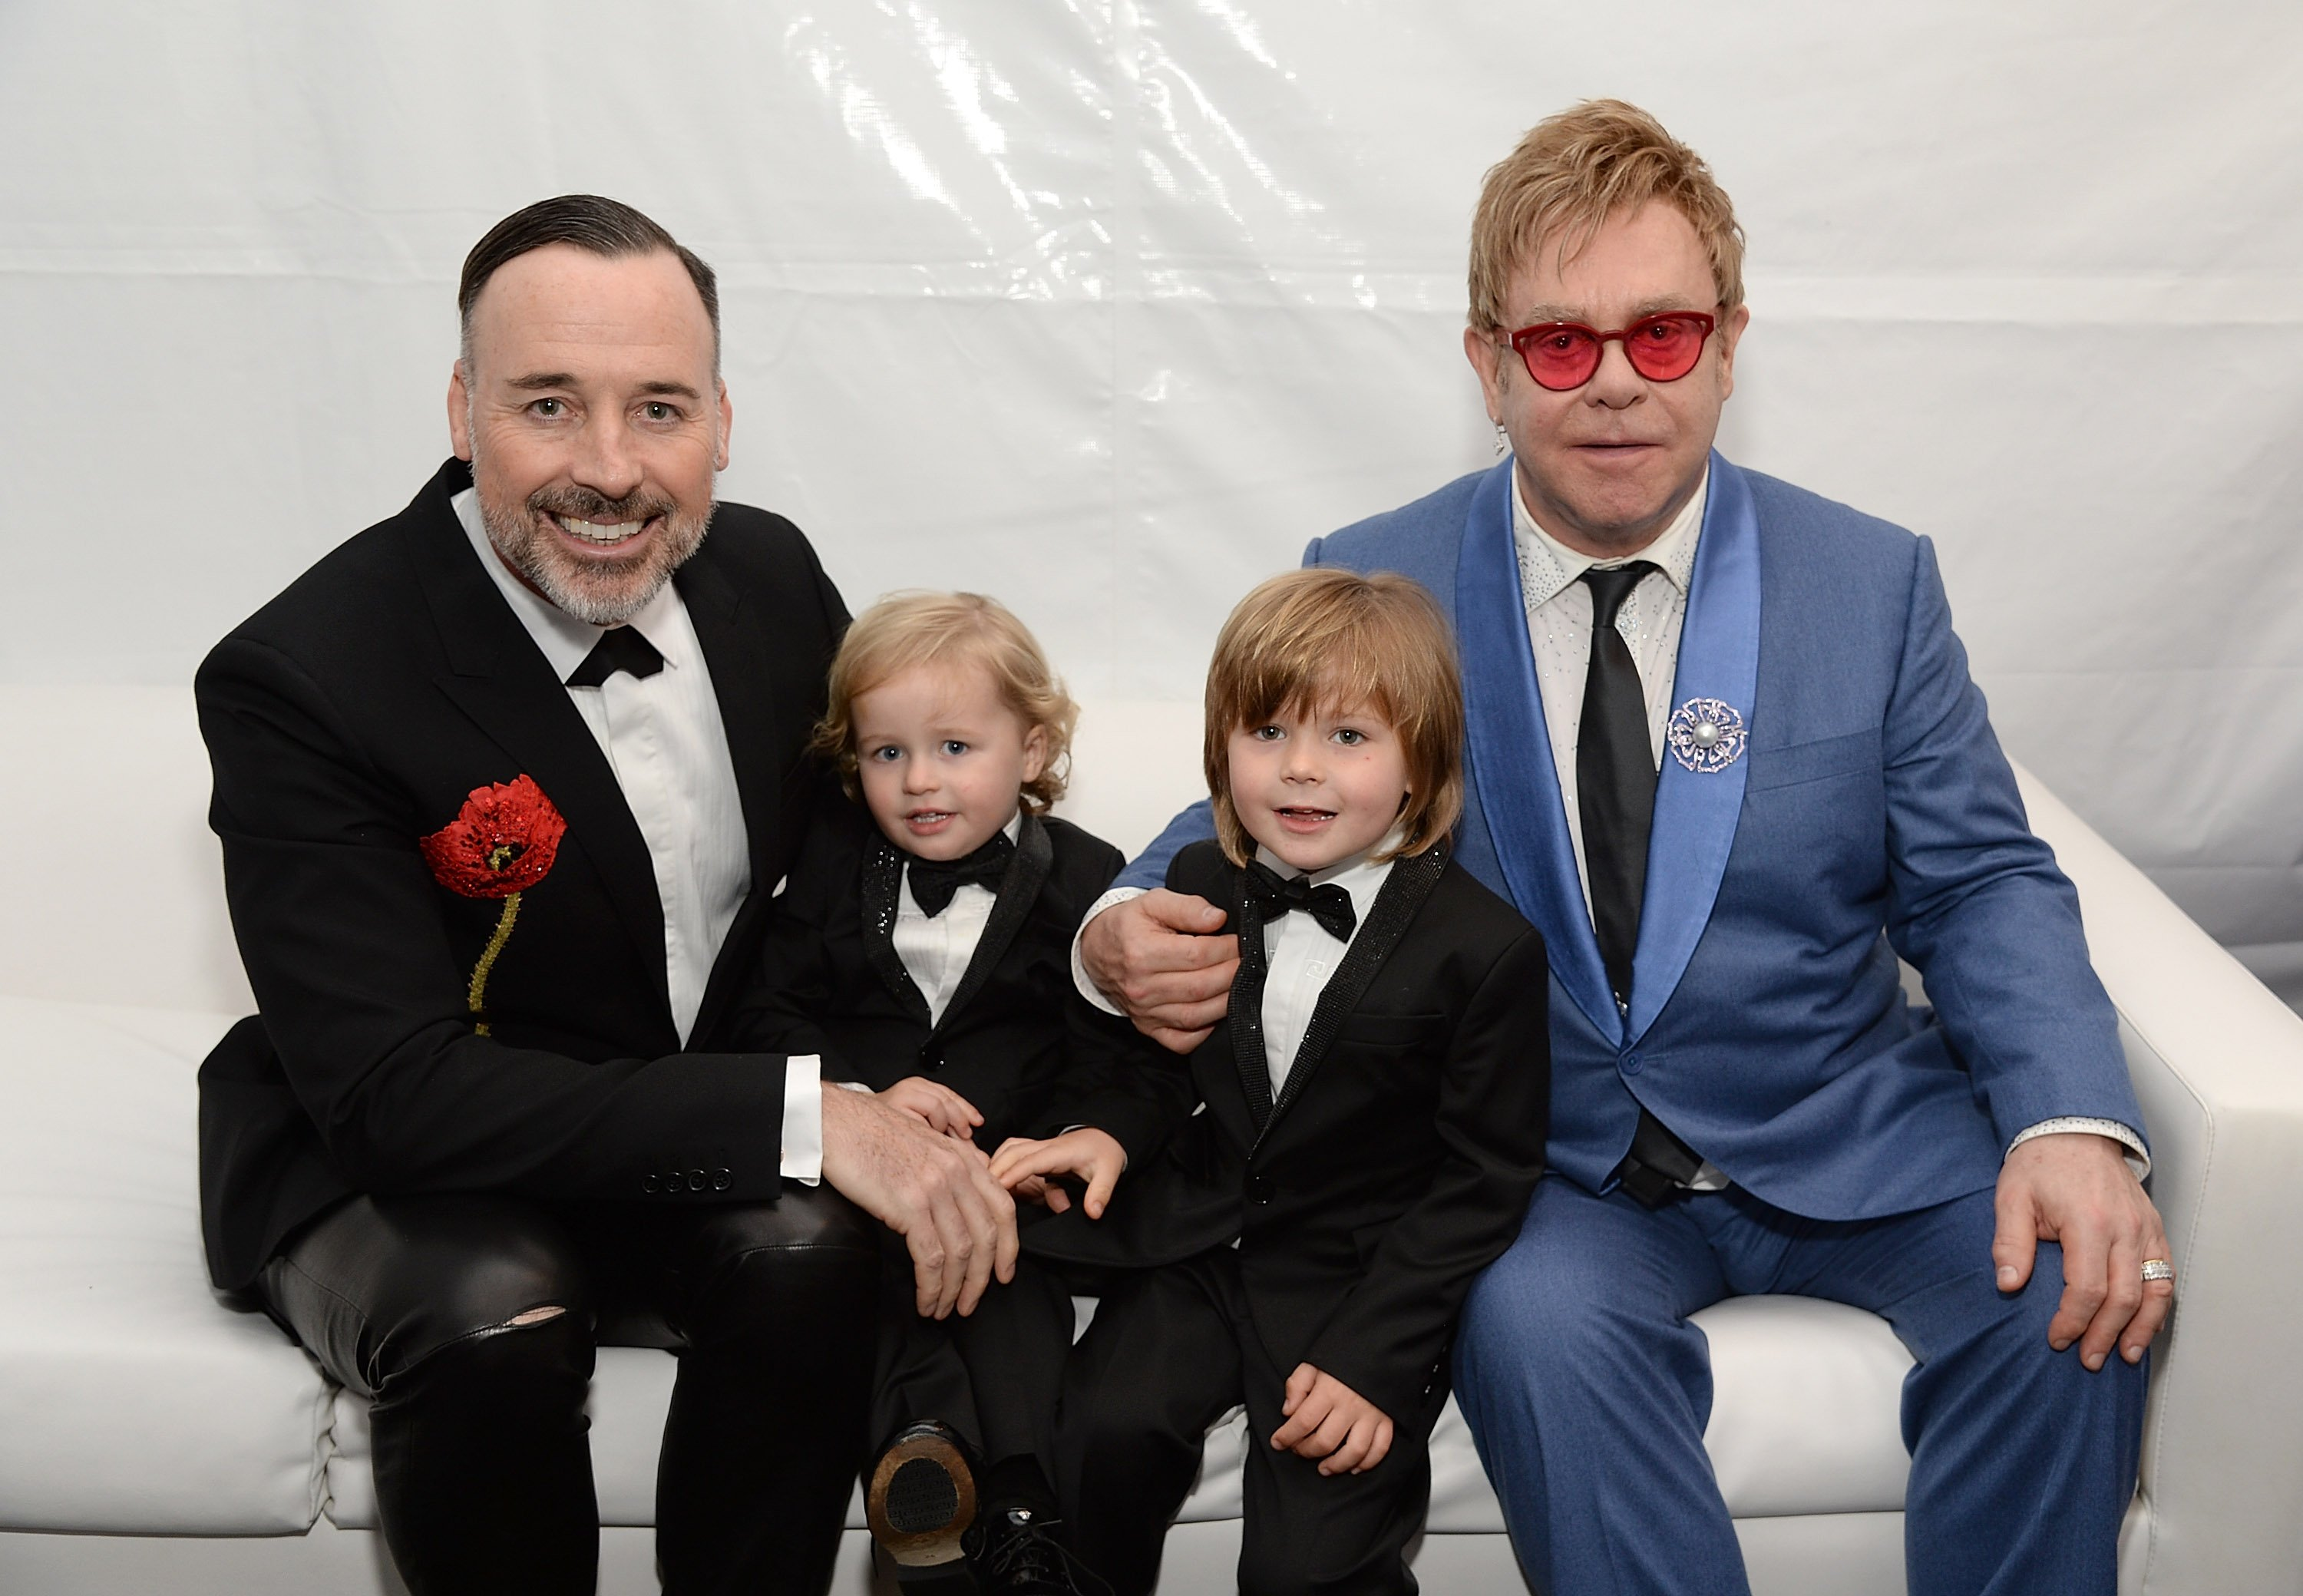 Image Credits: Getty Images / Elton John and David Furnish pose along with their children.